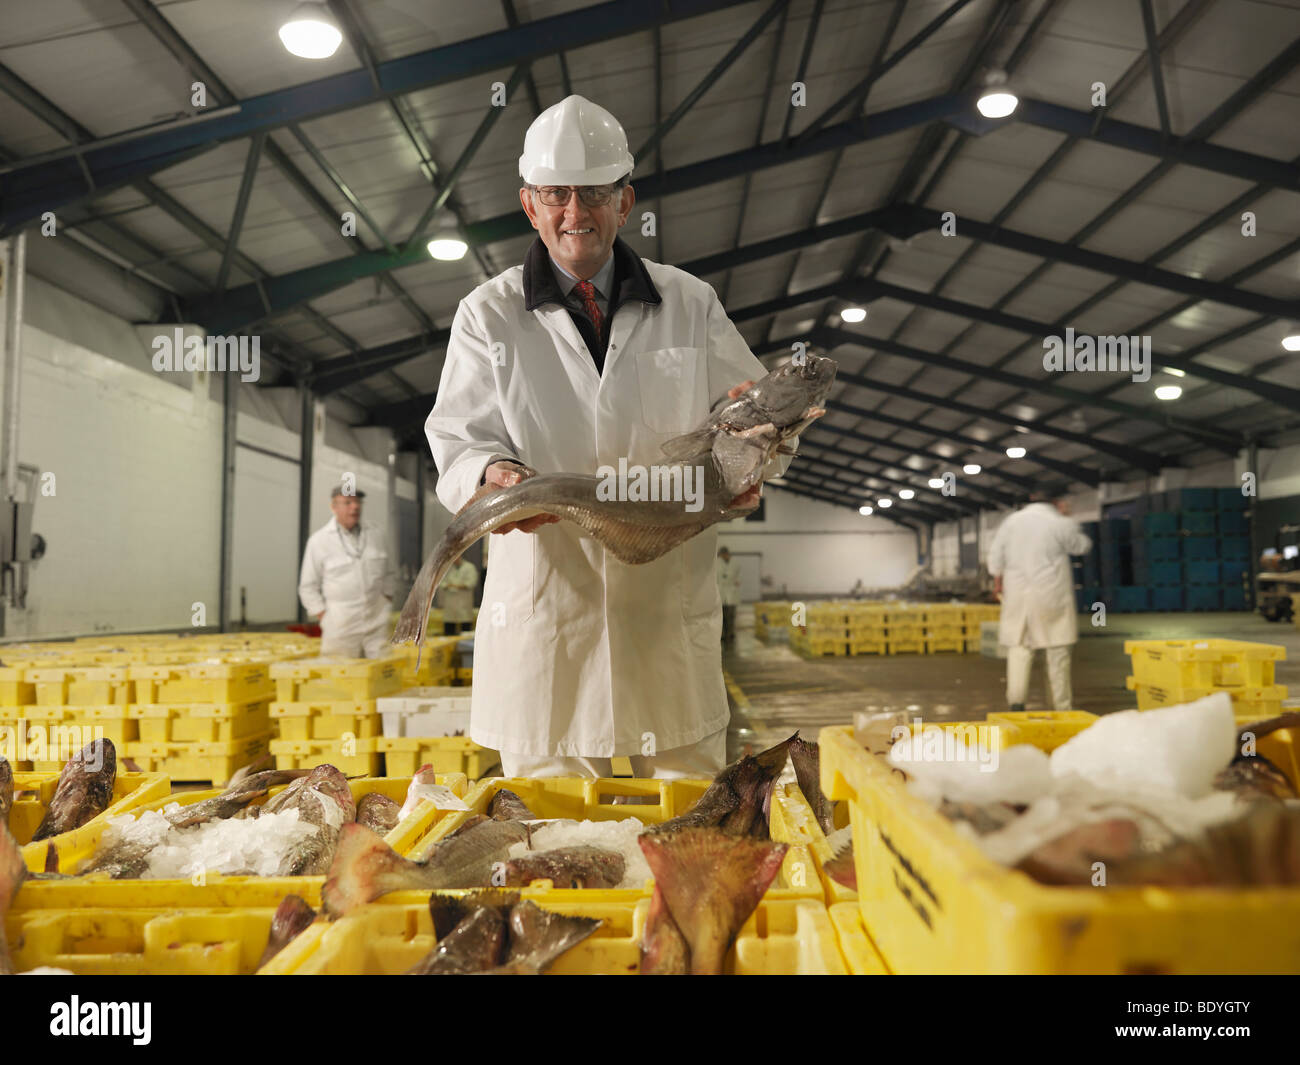 Worker Holding Fish In Market - Stock Image